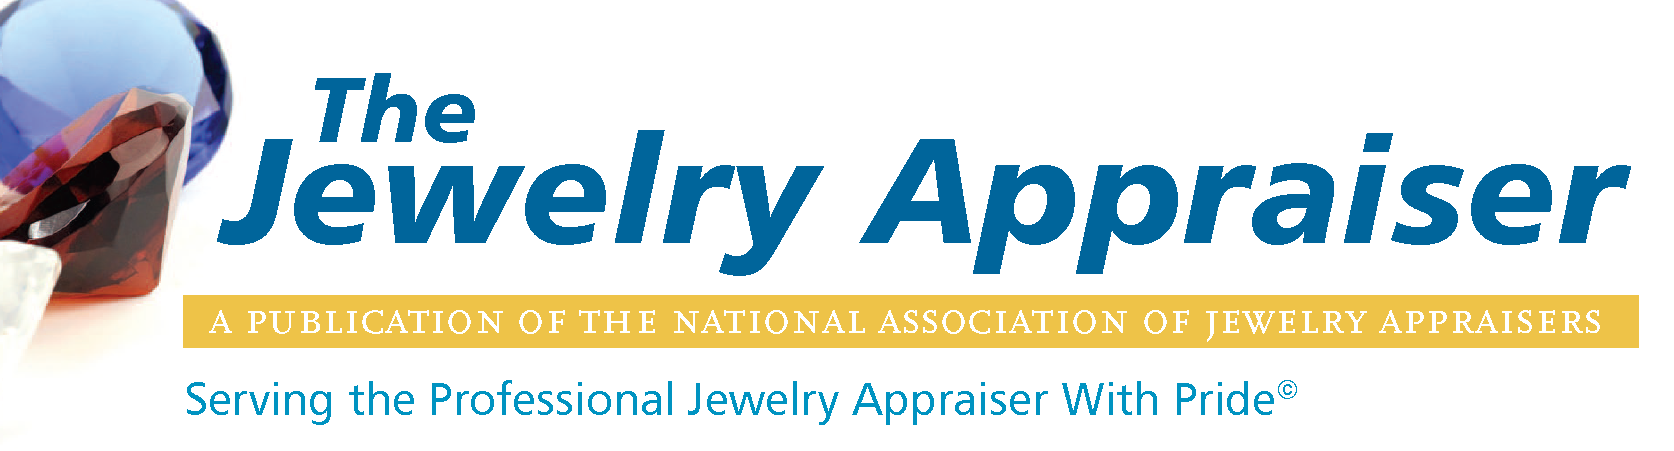 The Jewelry Appraiser Banner